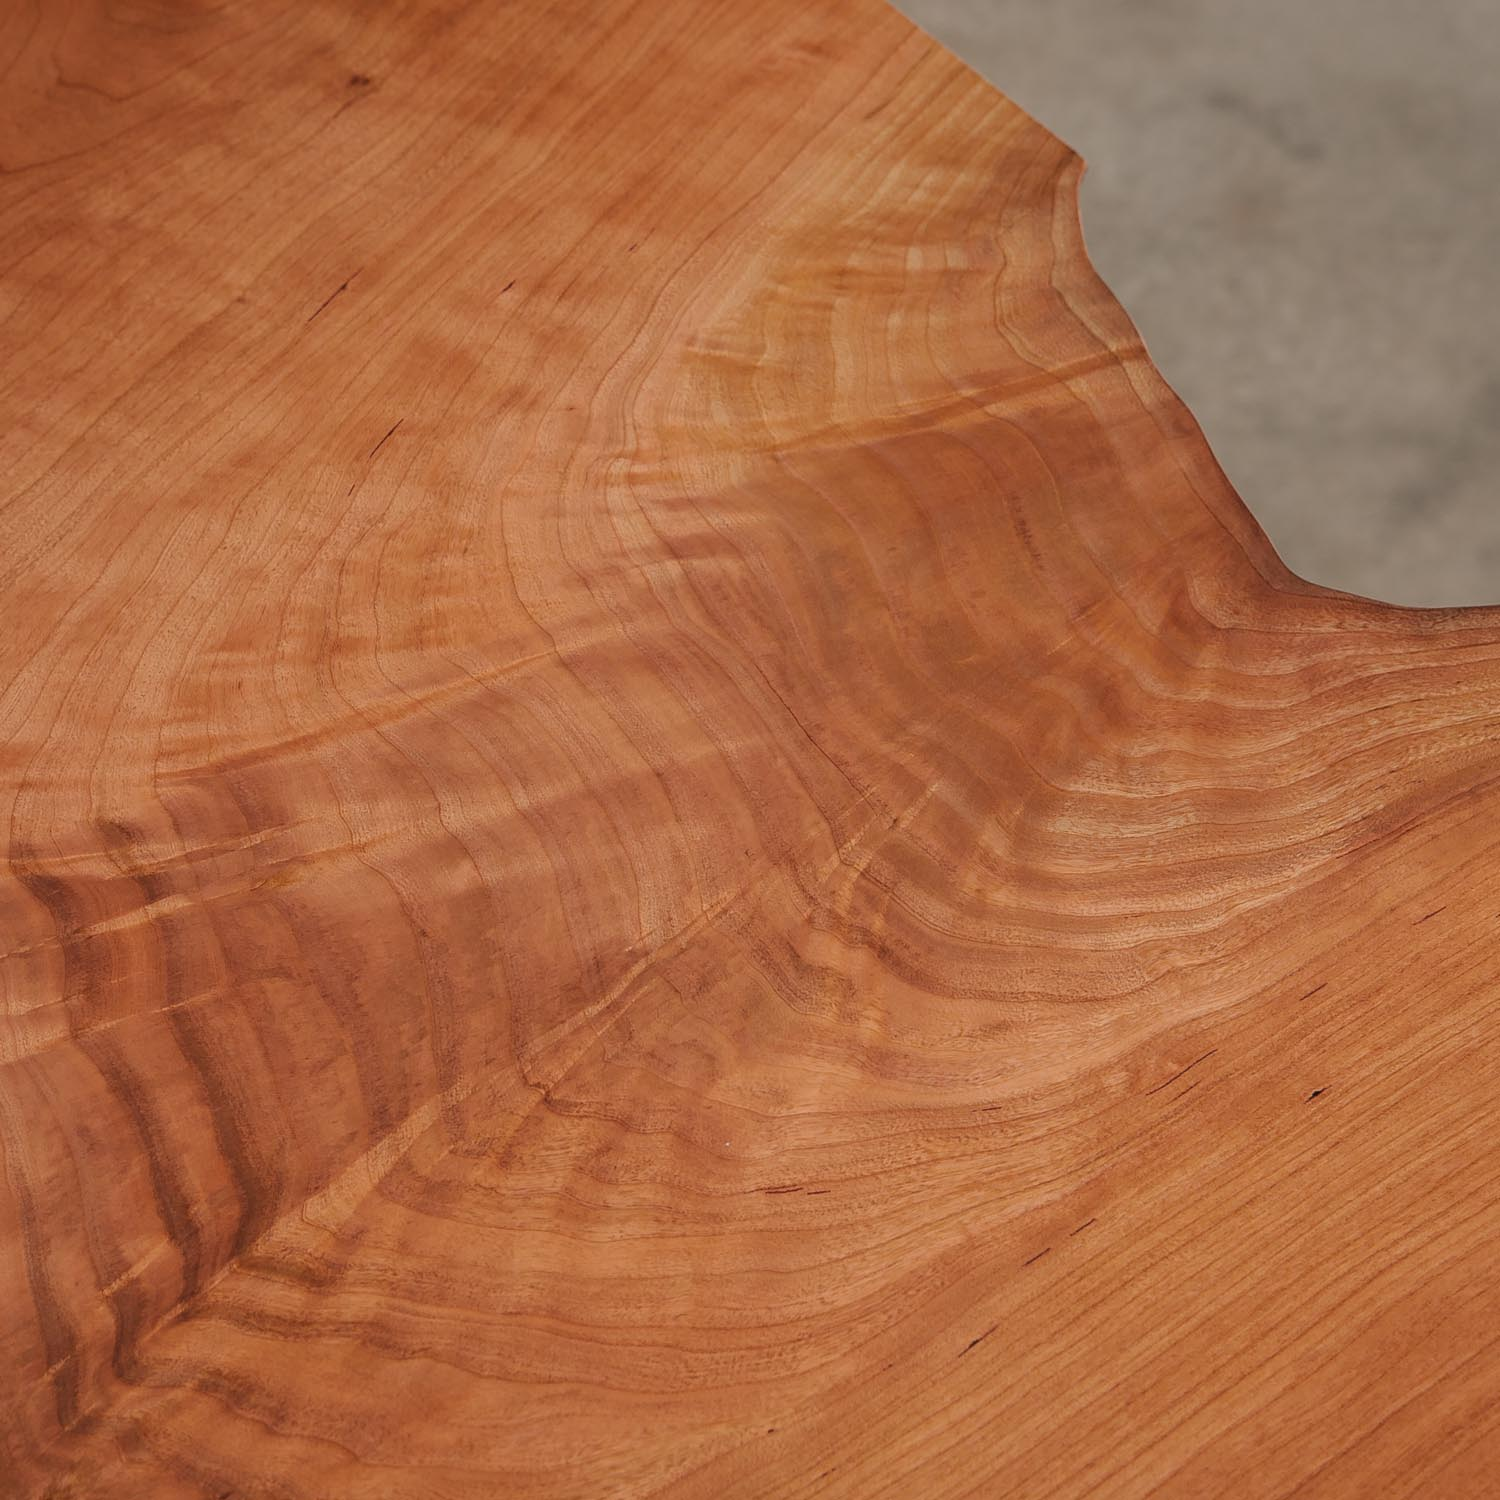 Figured cherry grain with natural tree rings on table